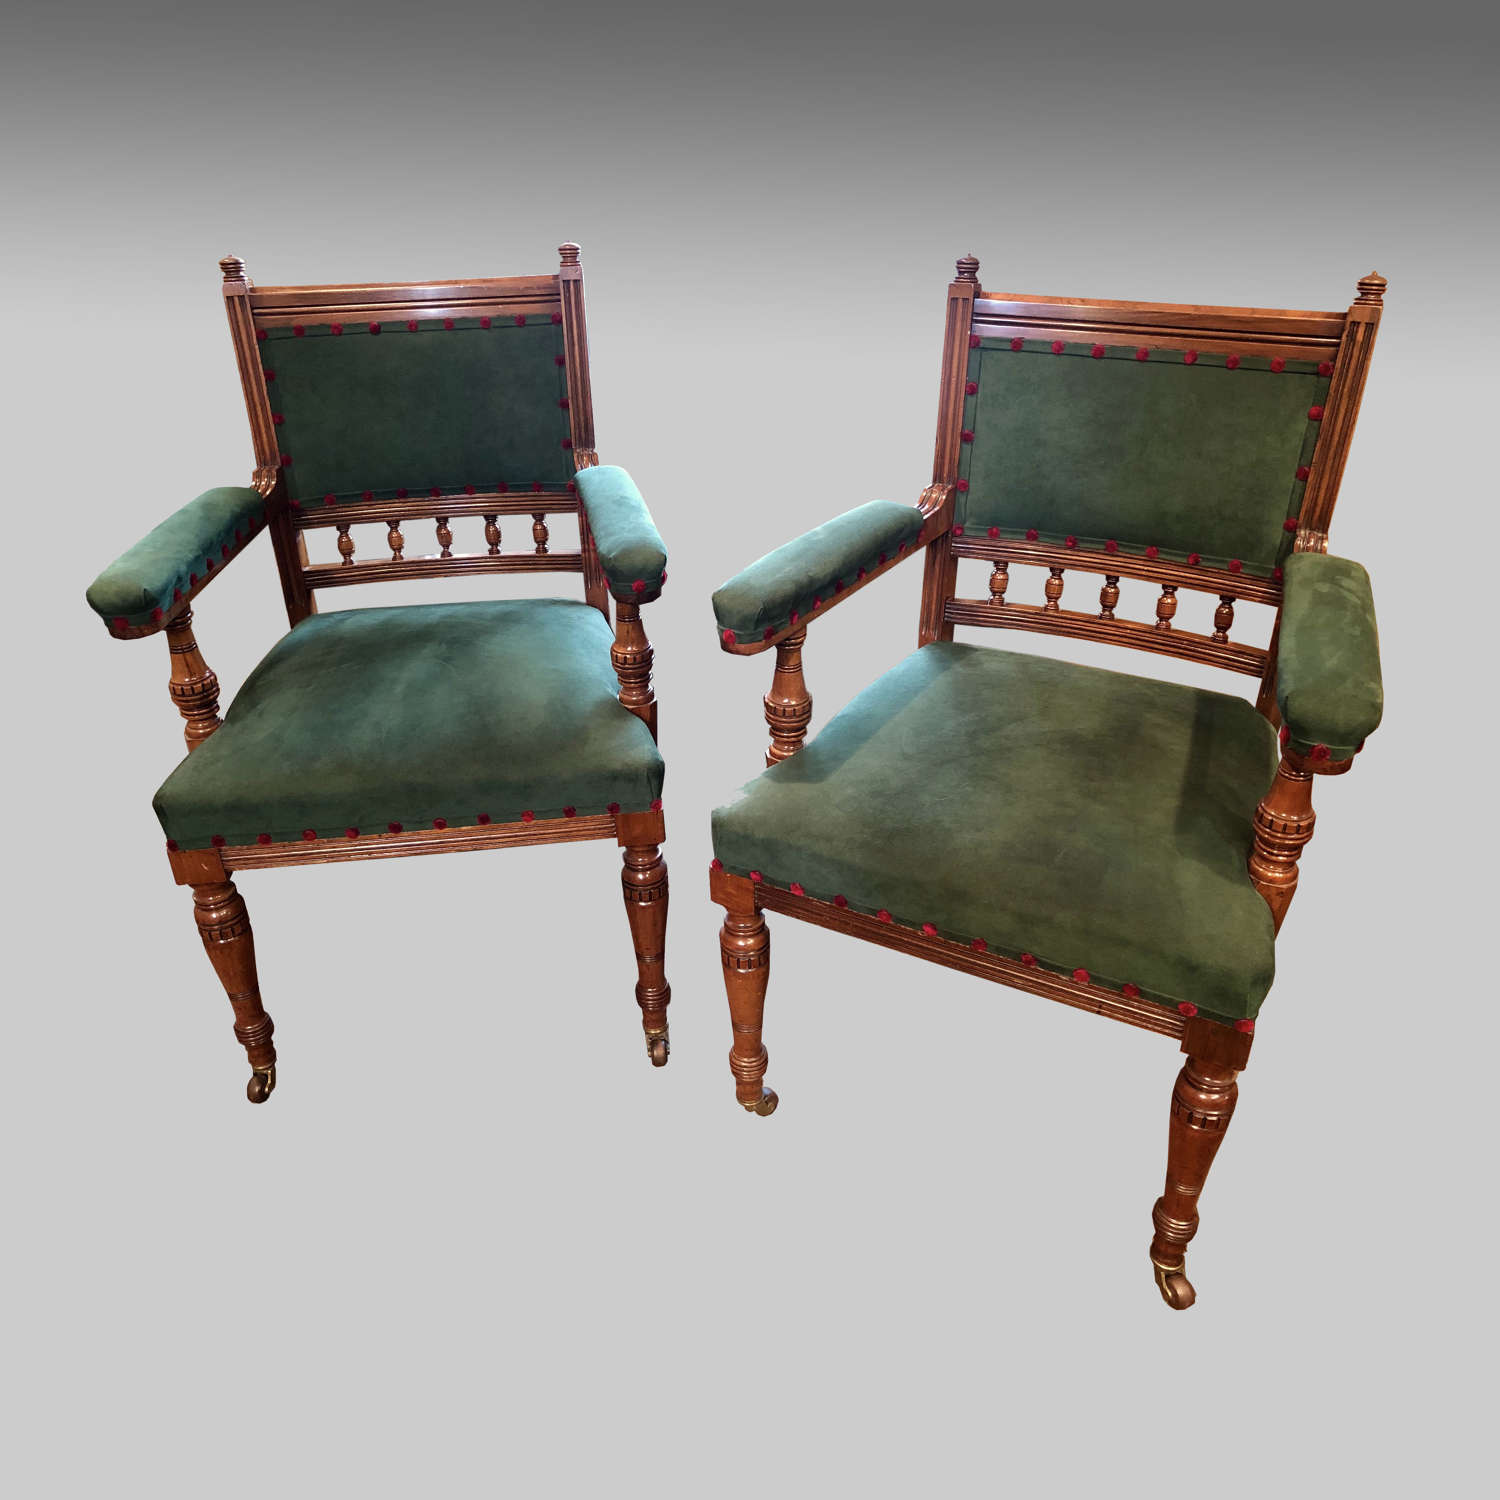 Pr. Scottish 19thC antique walnut armchairs by J & T Scott, Edinburgh